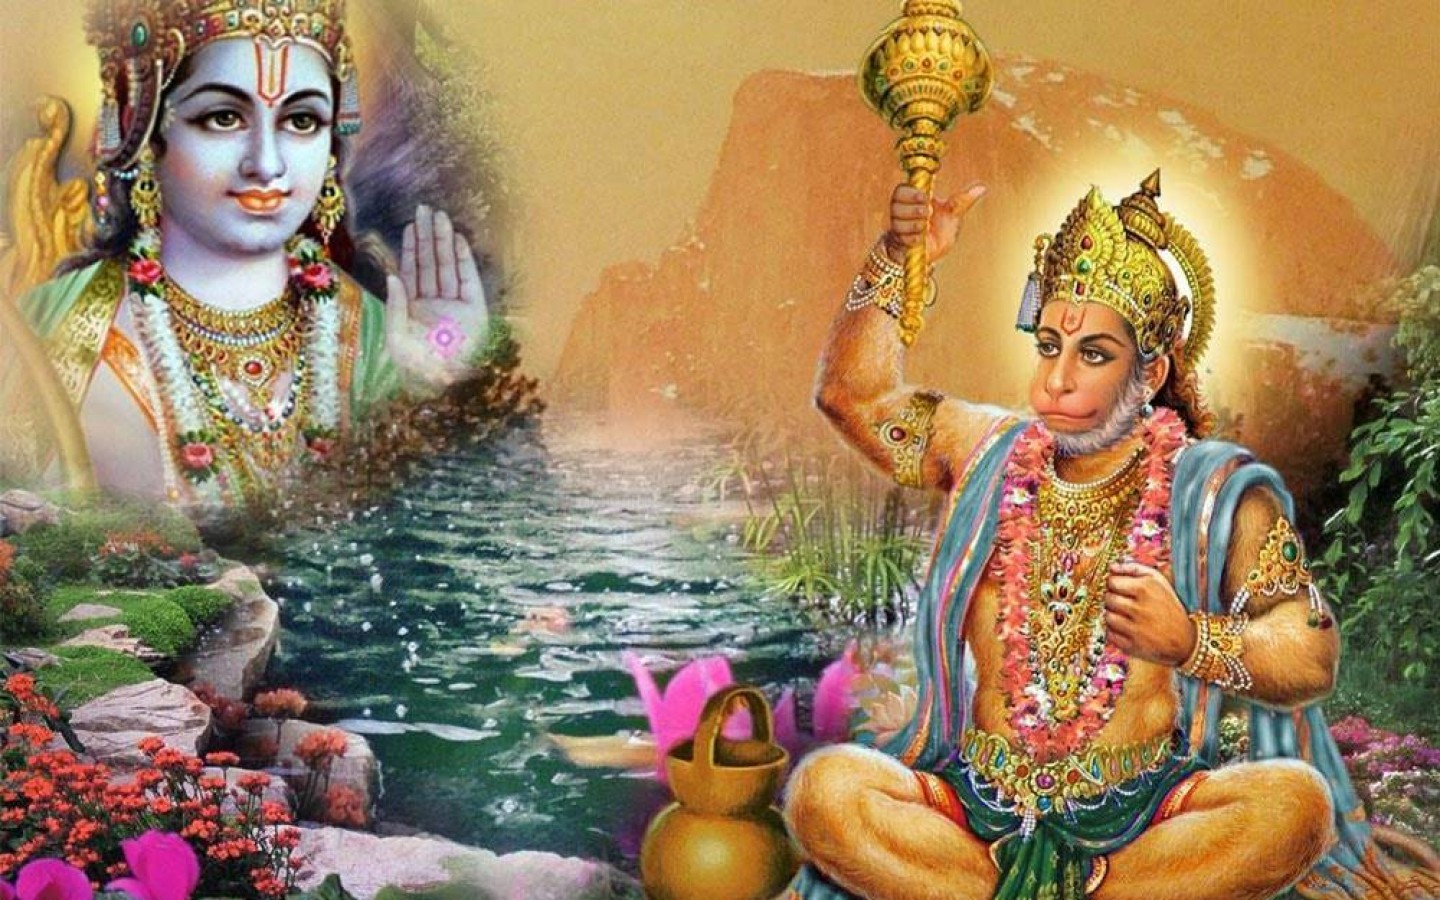 Hanuman Ji Ram Ji Wallpapers Bajrang Bali Images